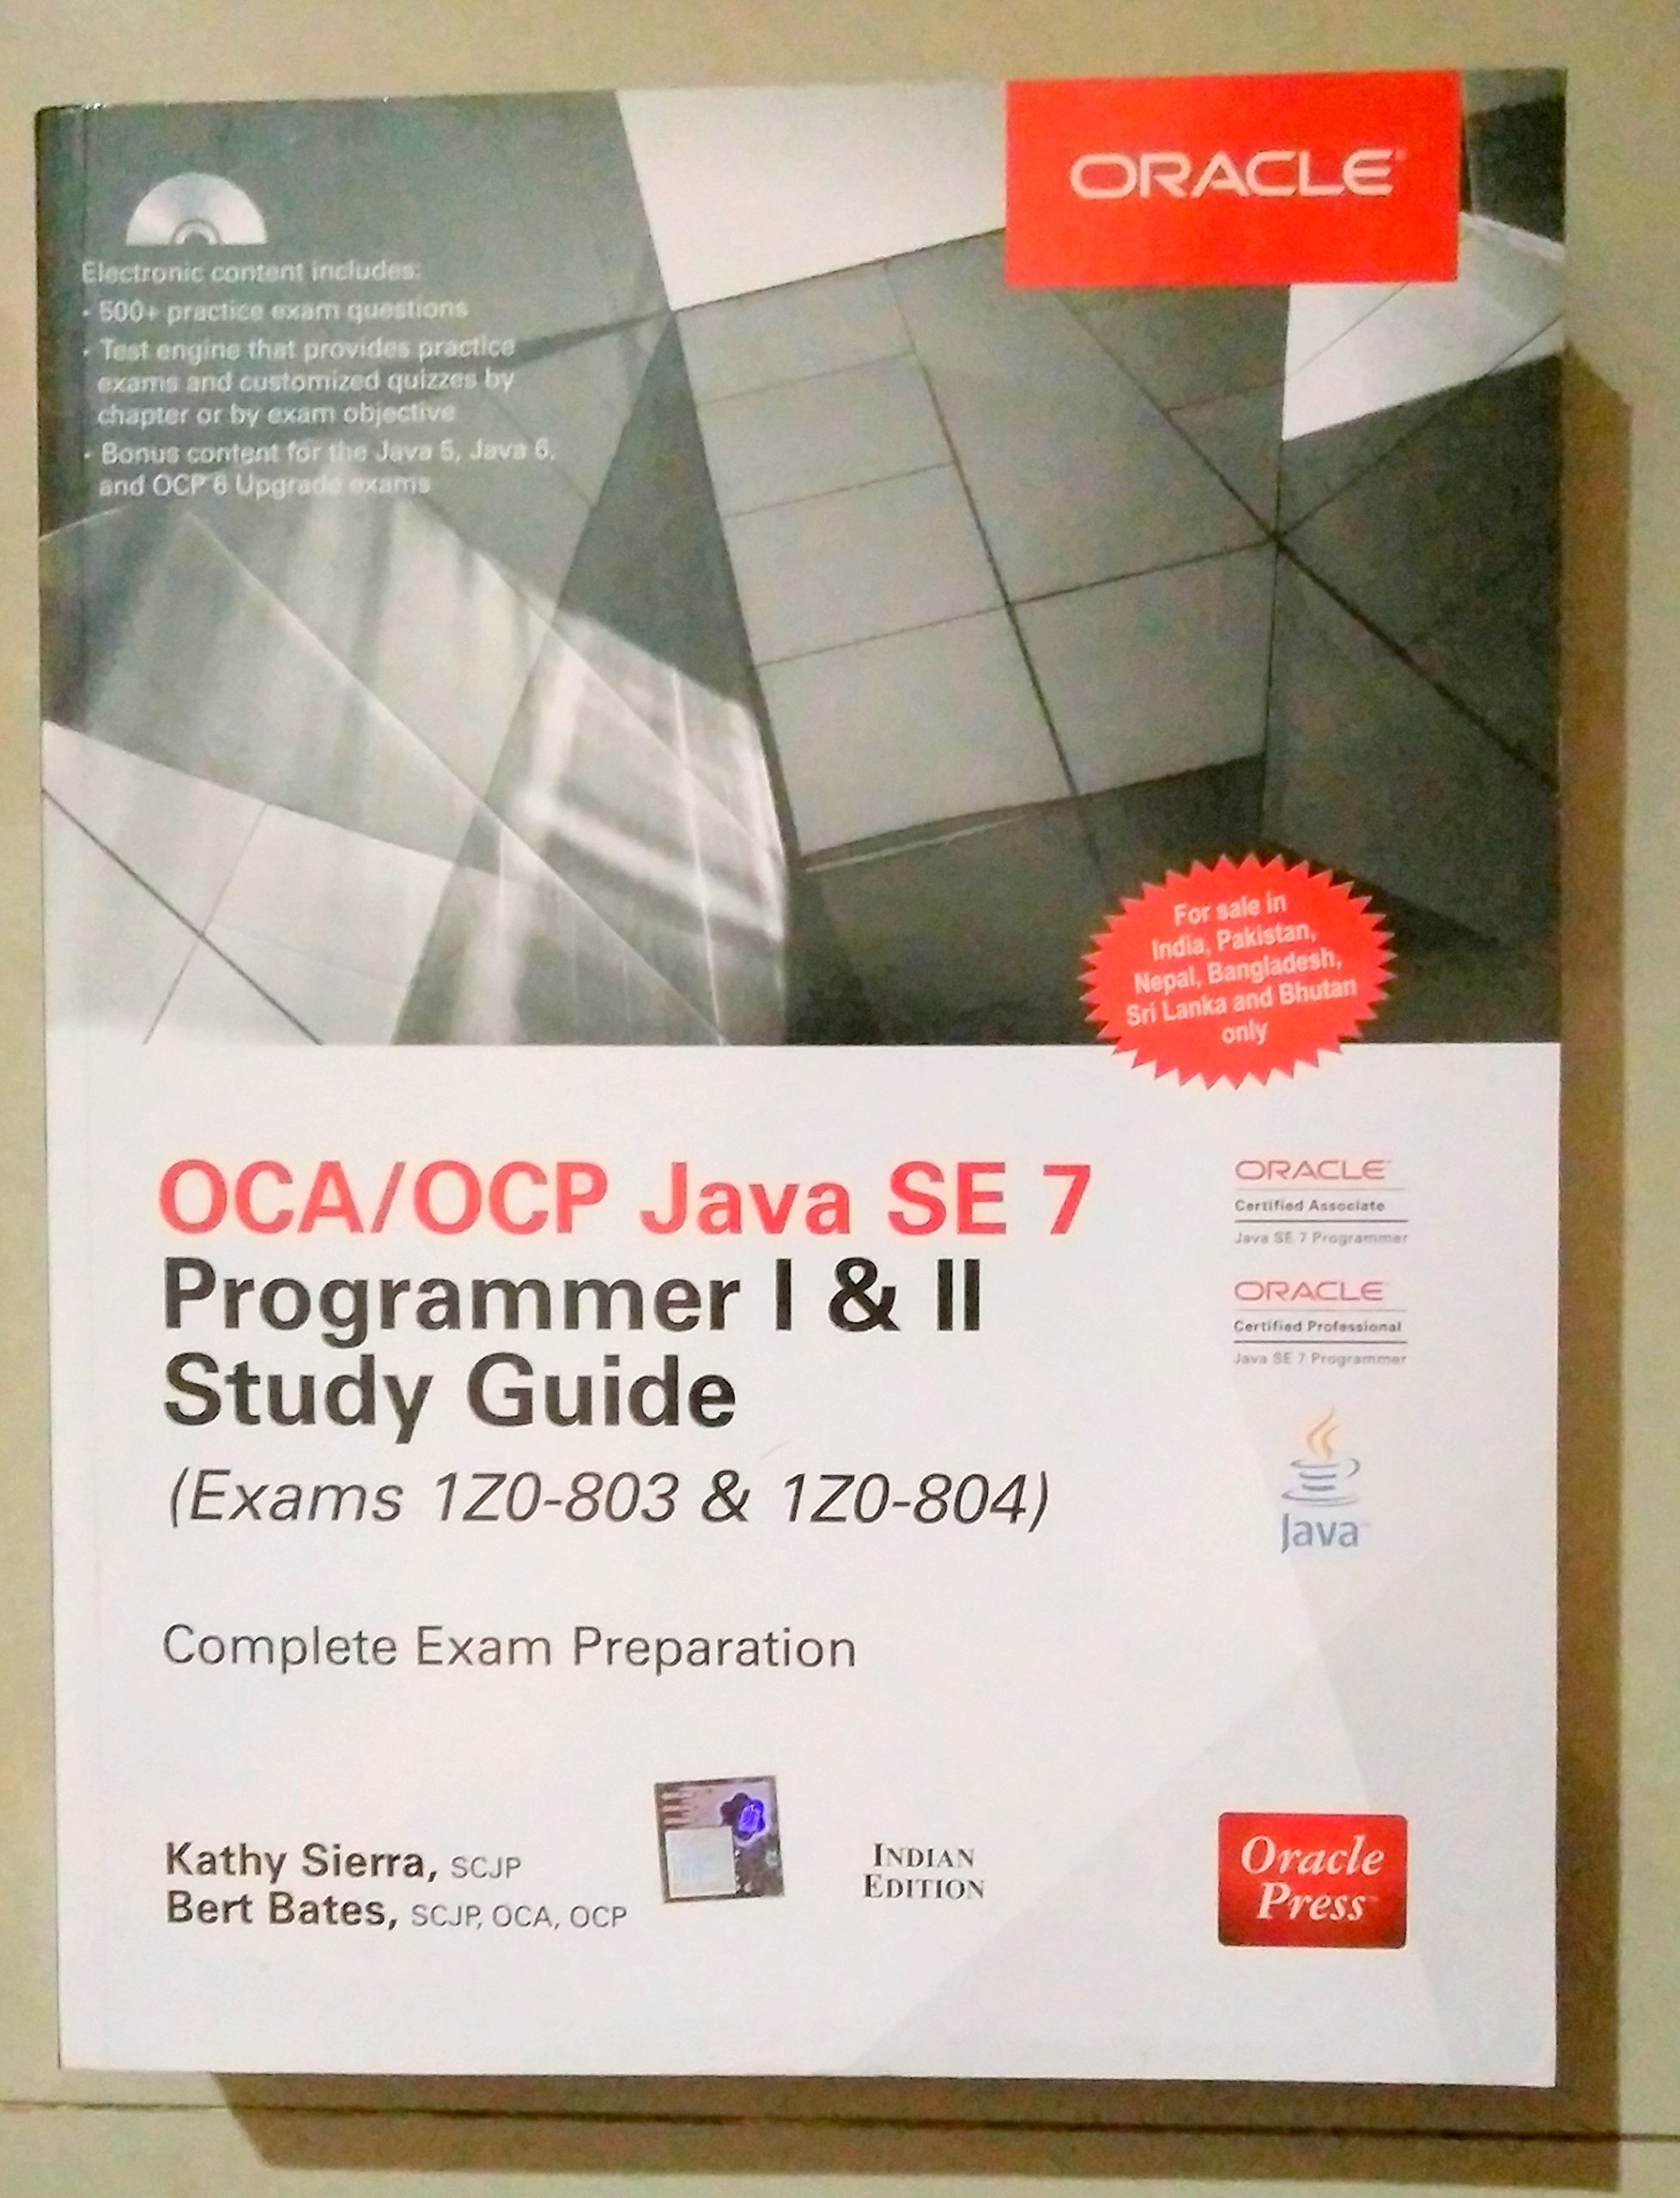 buy oca ocp java se programmer i ii study guide exams z  buy oca ocp java se 7 programmer i ii study guide exams 1z0 803 1z0 804 book online at low prices in oca ocp java se 7 programmer i ii study